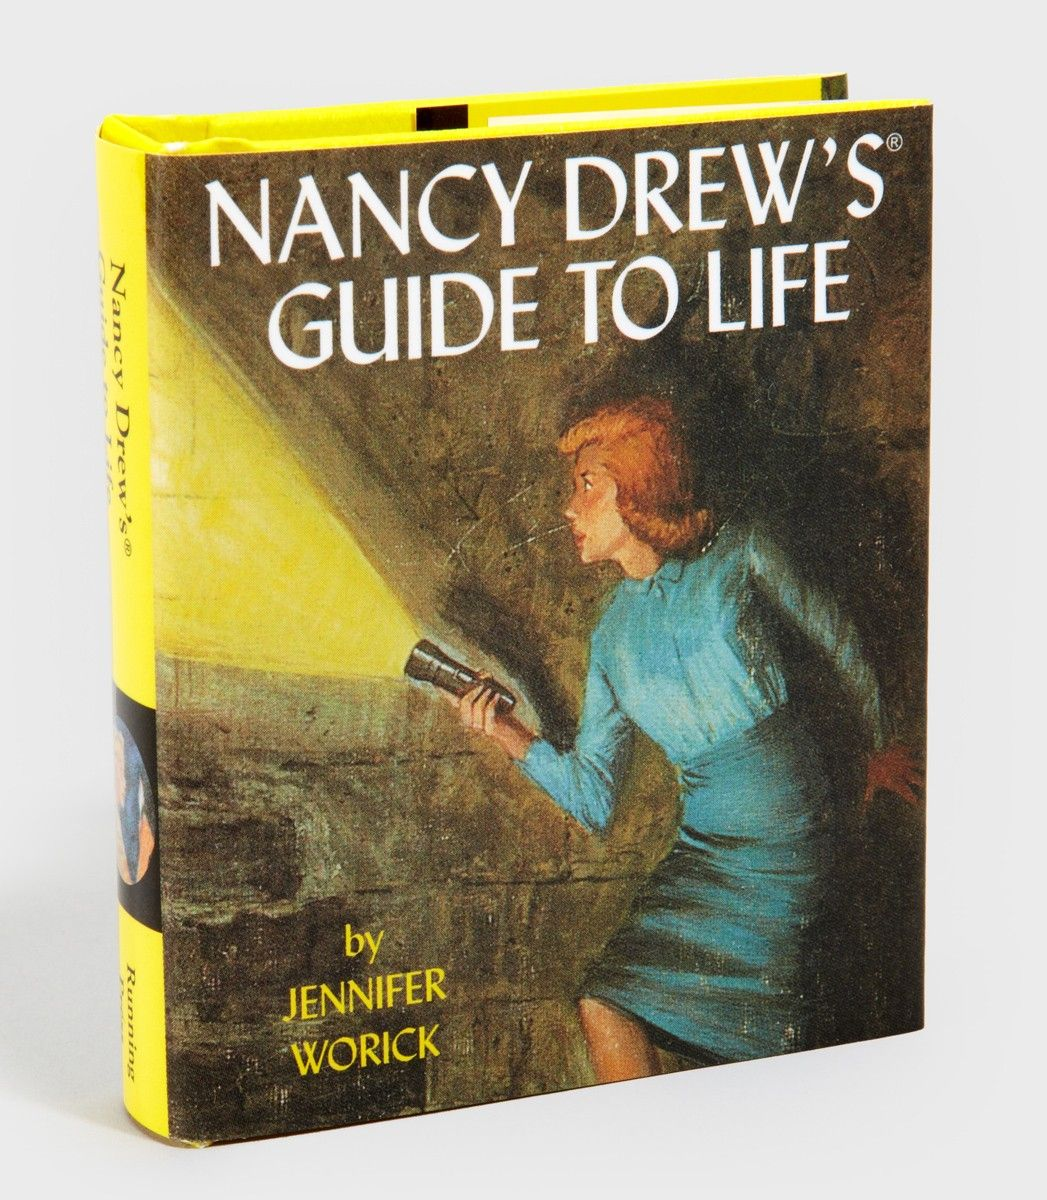 Nancy Drew - the first girl hero I read about -- I love her Guide To Life too.